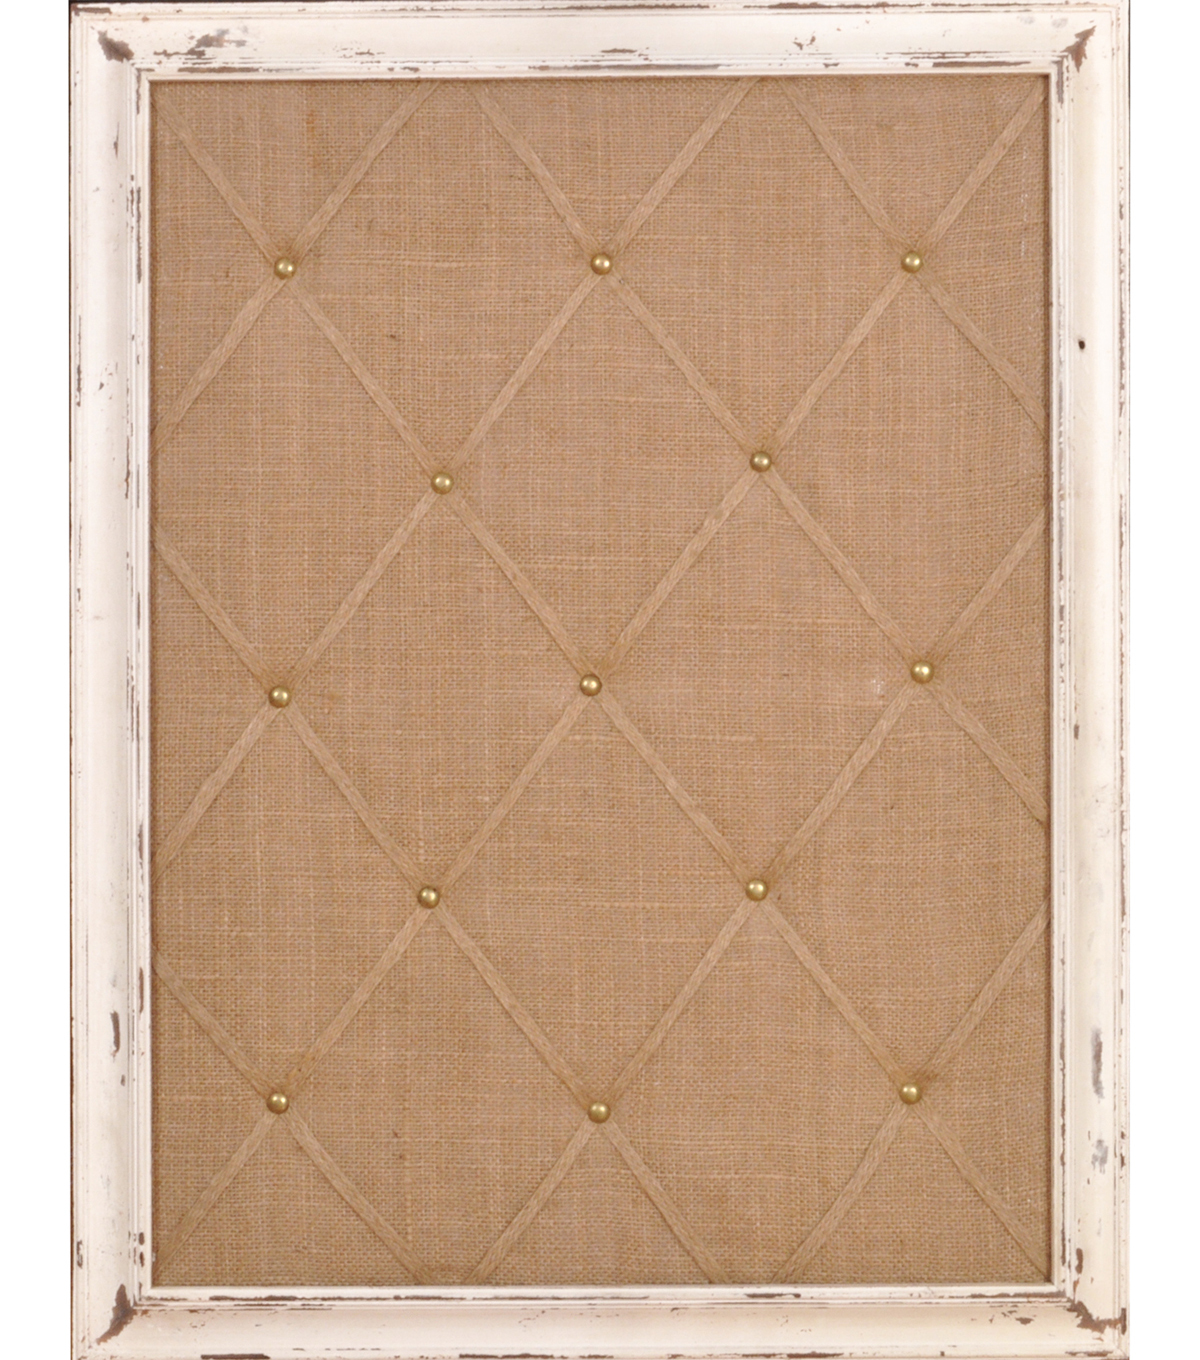 18\u0022x24\u0022 Distressed Ivory Memo Board